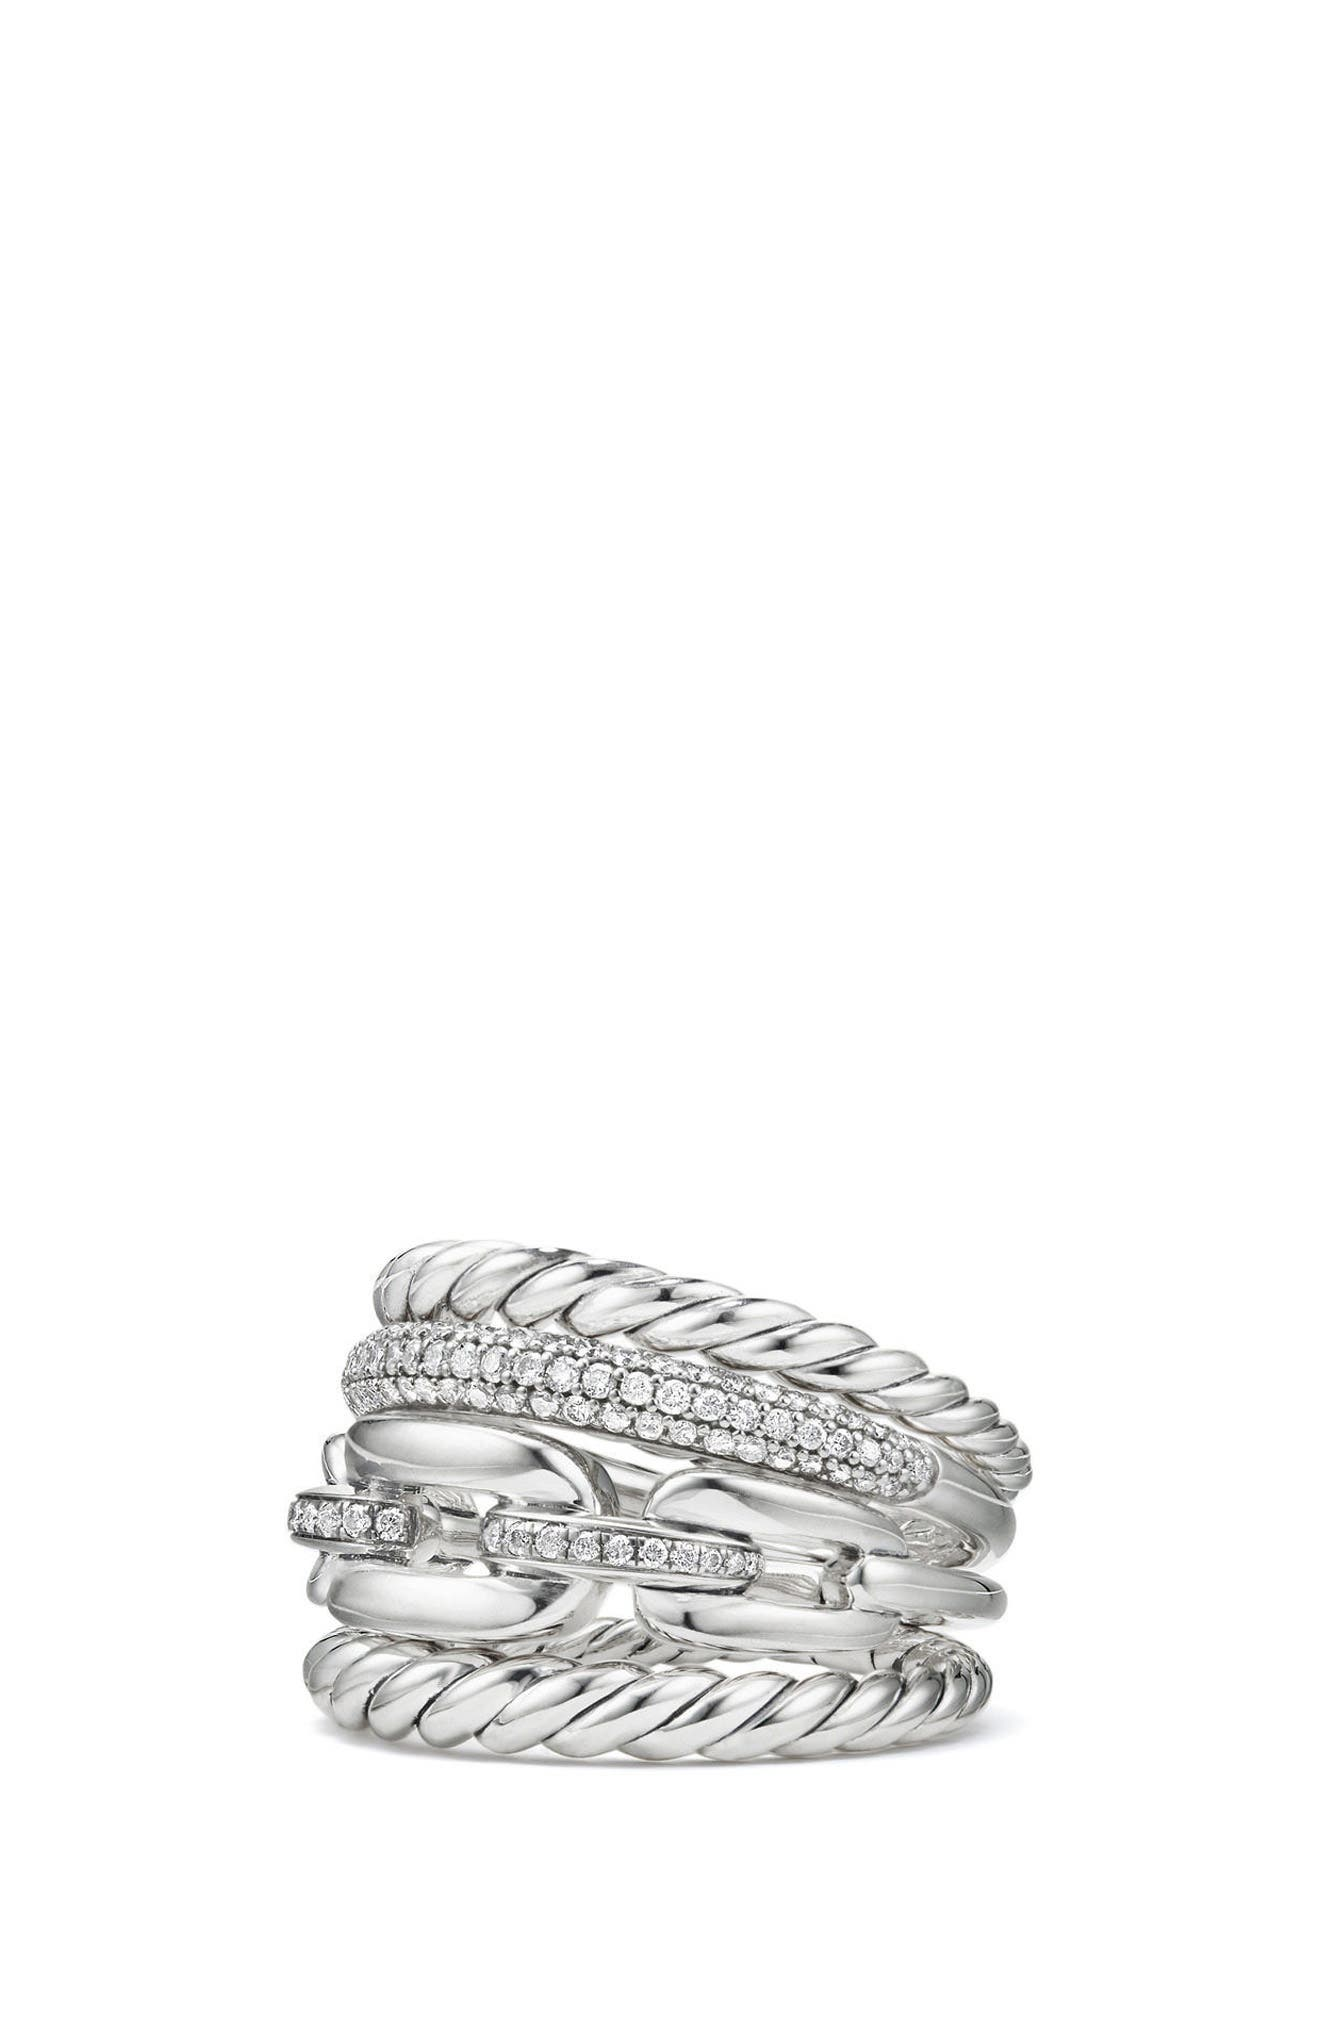 David Yurman Stax Four-Row Ring with Diamonds